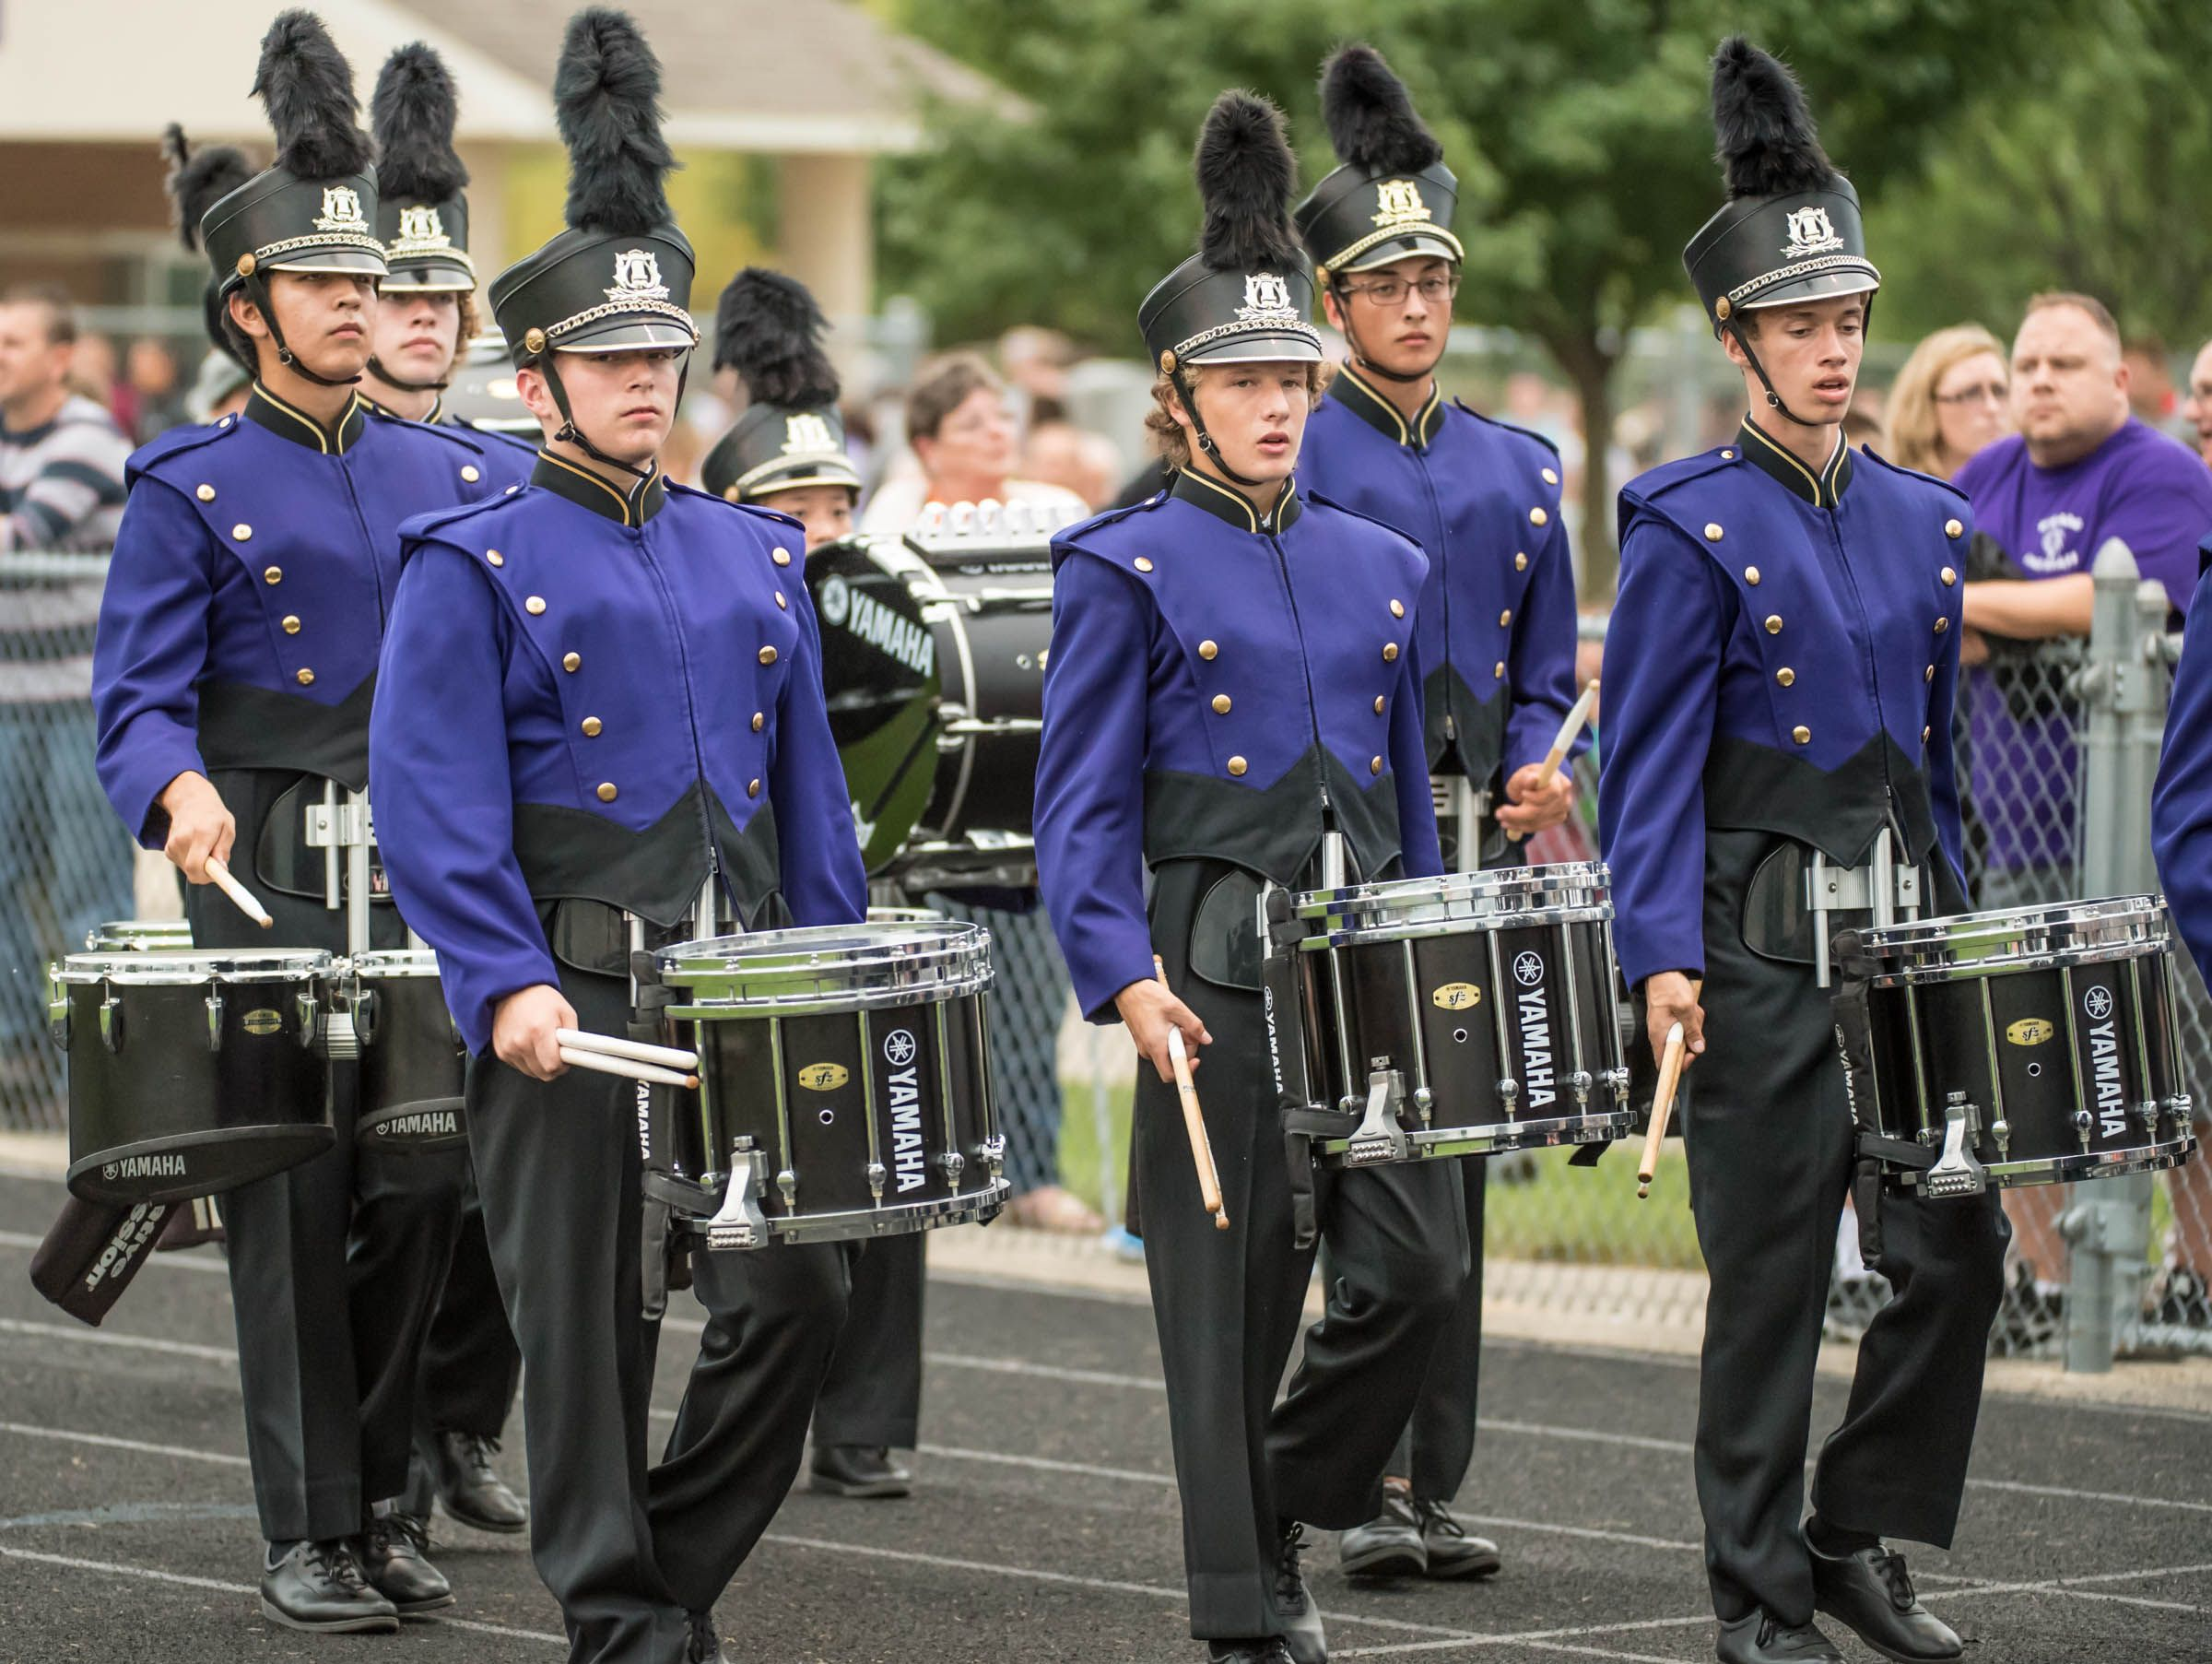 Lakeview marching band